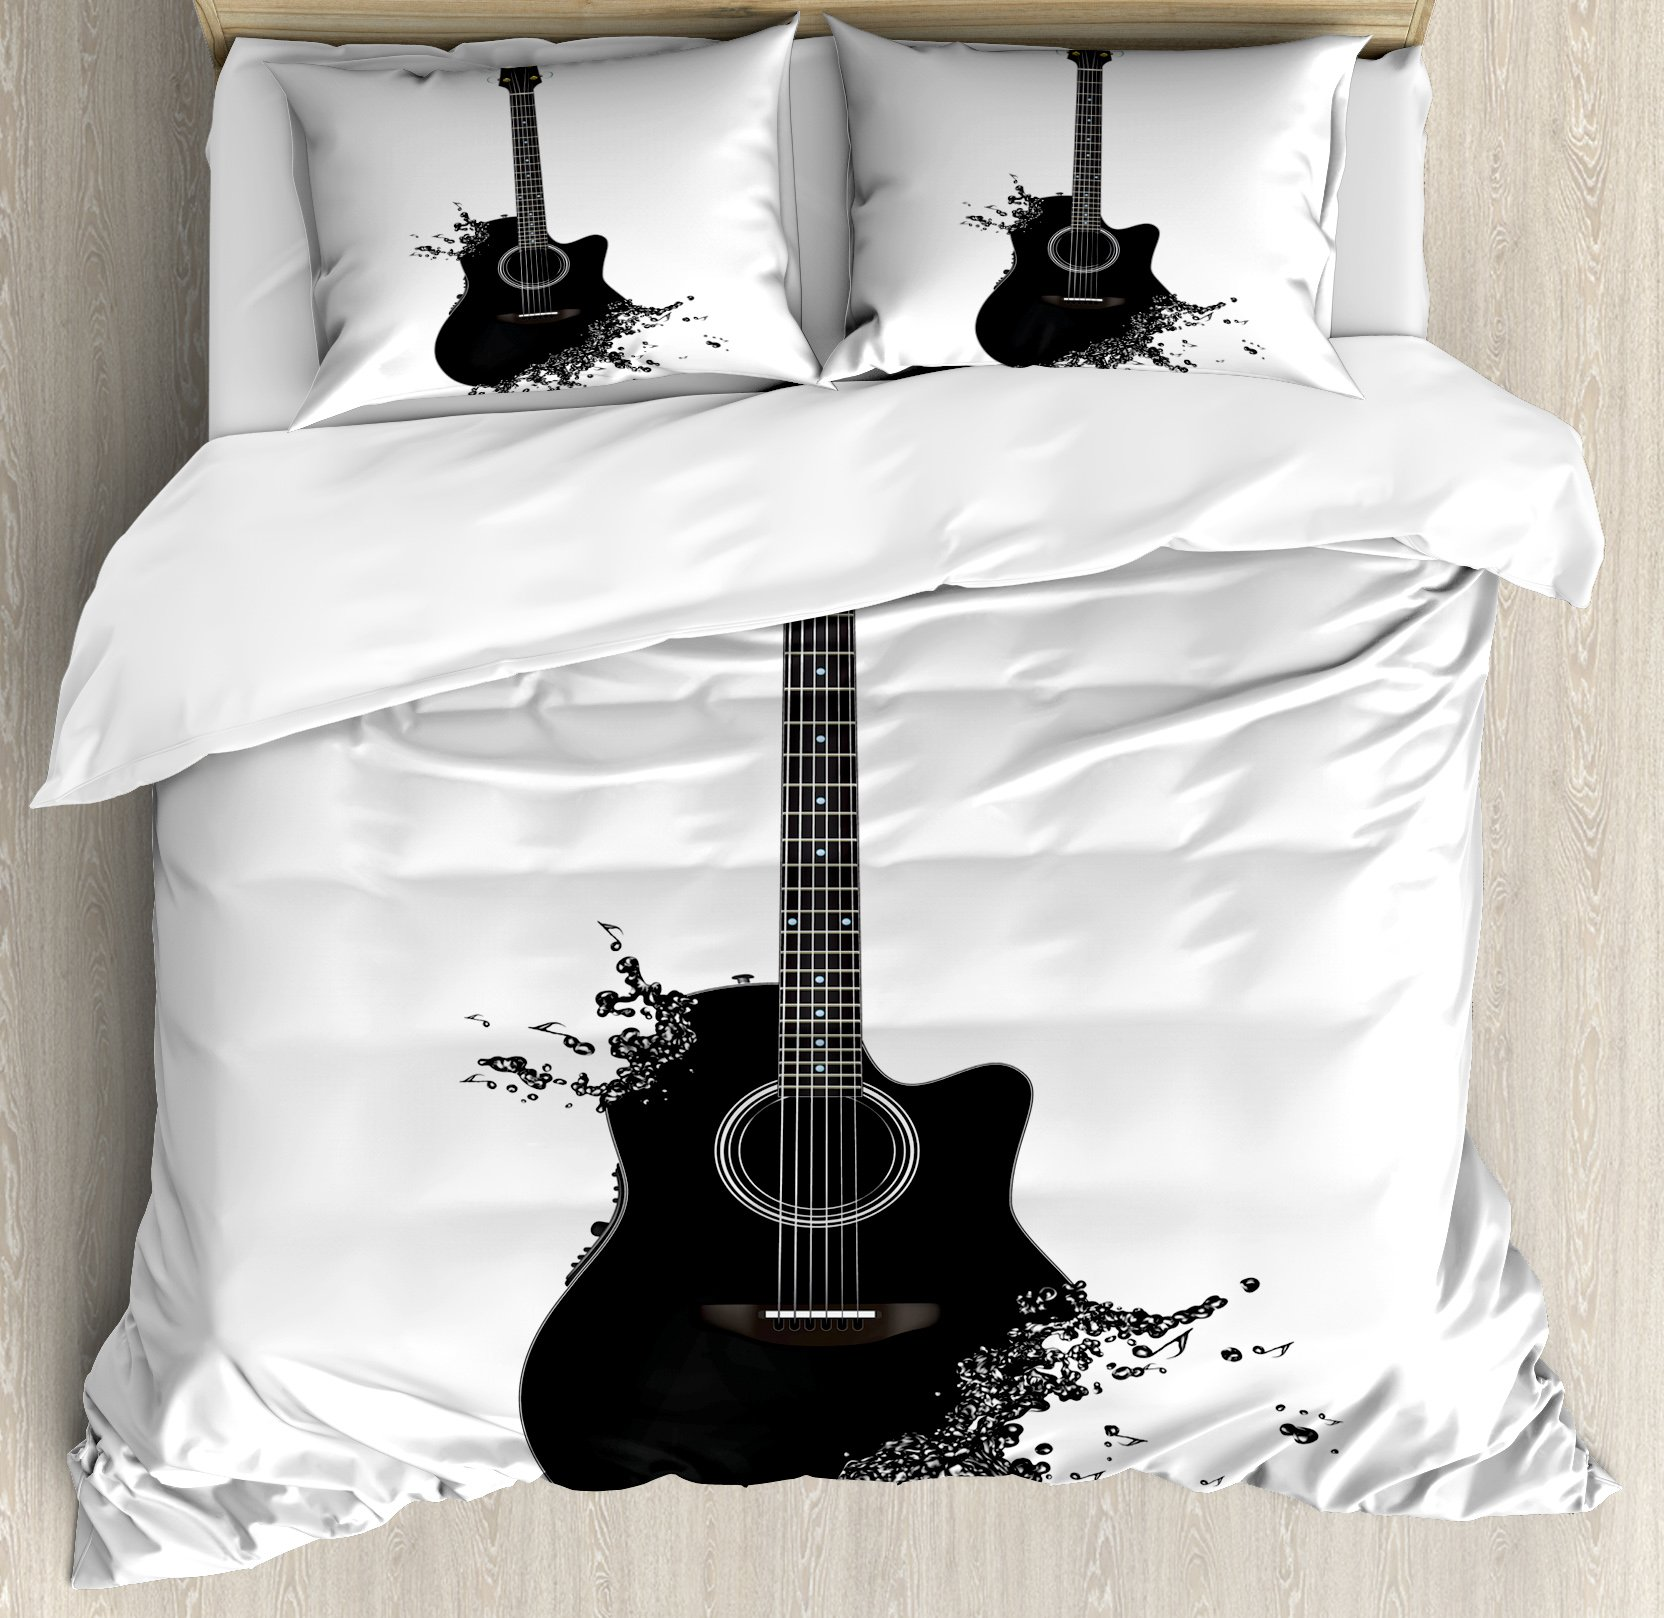 Guitar Queen Size Duvet Cover Set by Ambesonne, Monochrome Musical Instrument with Strings Acoustic Color Splashes Creative Outlet, Decorative 3 Piece Bedding Set with 2 Pillow Shams, Black White